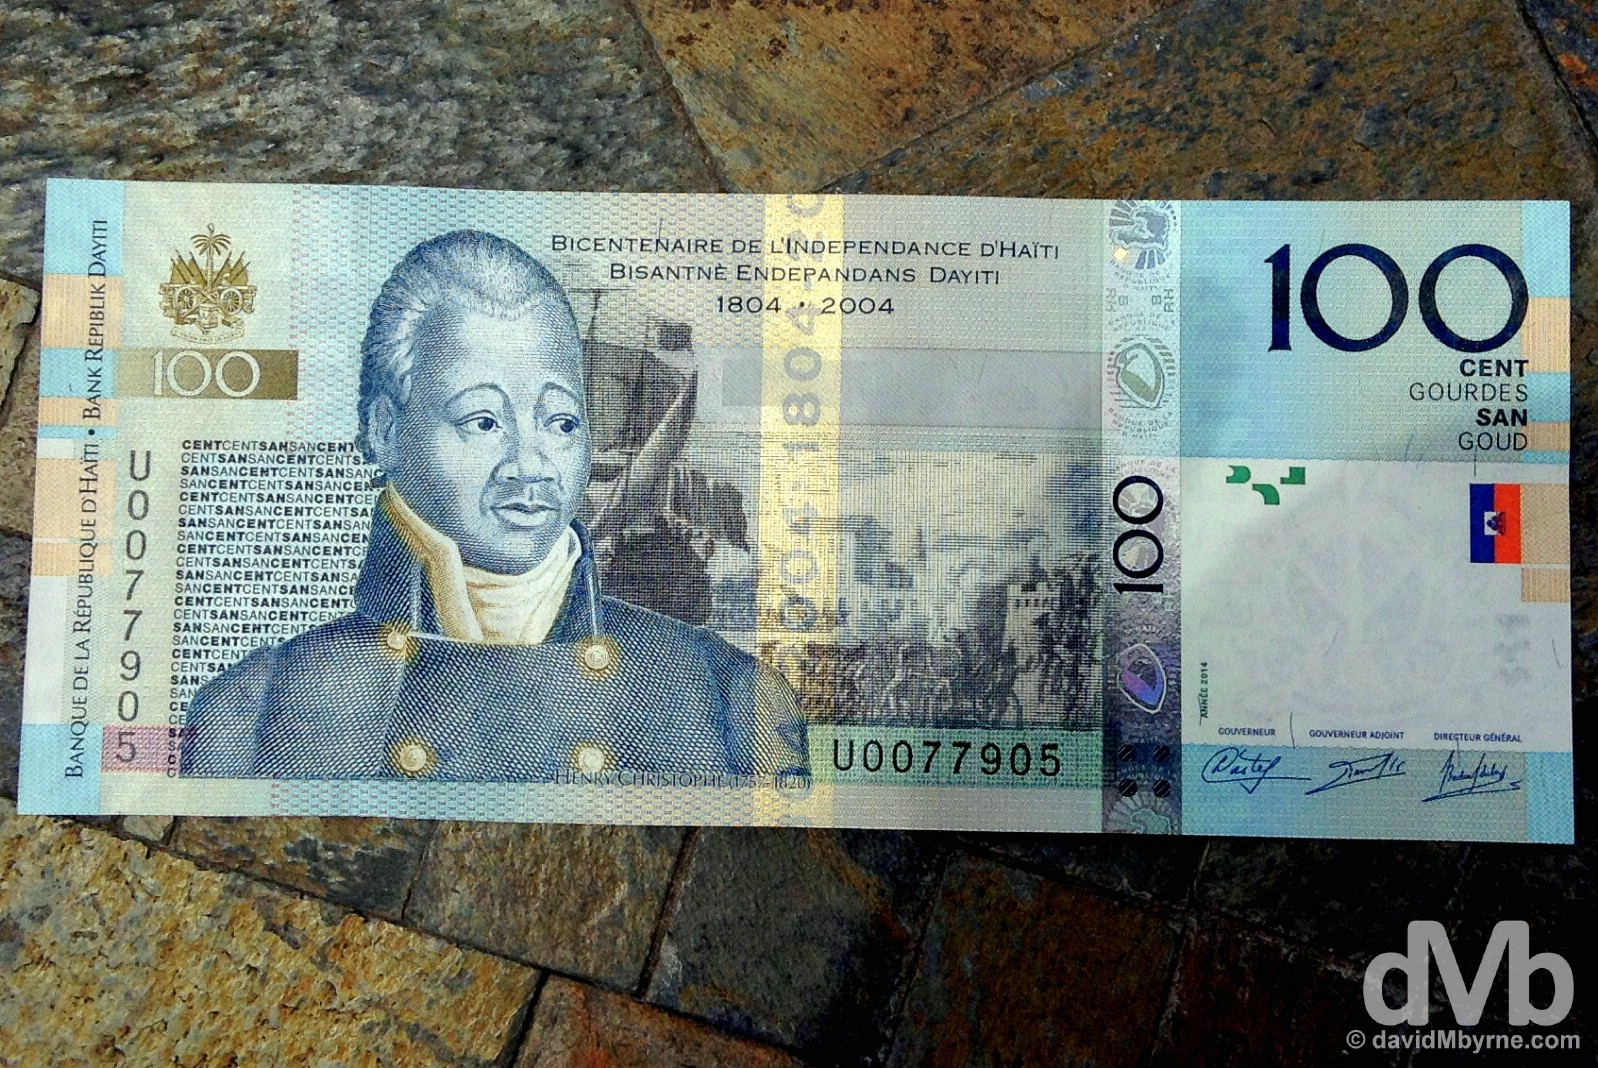 100 Goud (€1.40). Port-Au-Prince, Haiti. May 16, 2015.